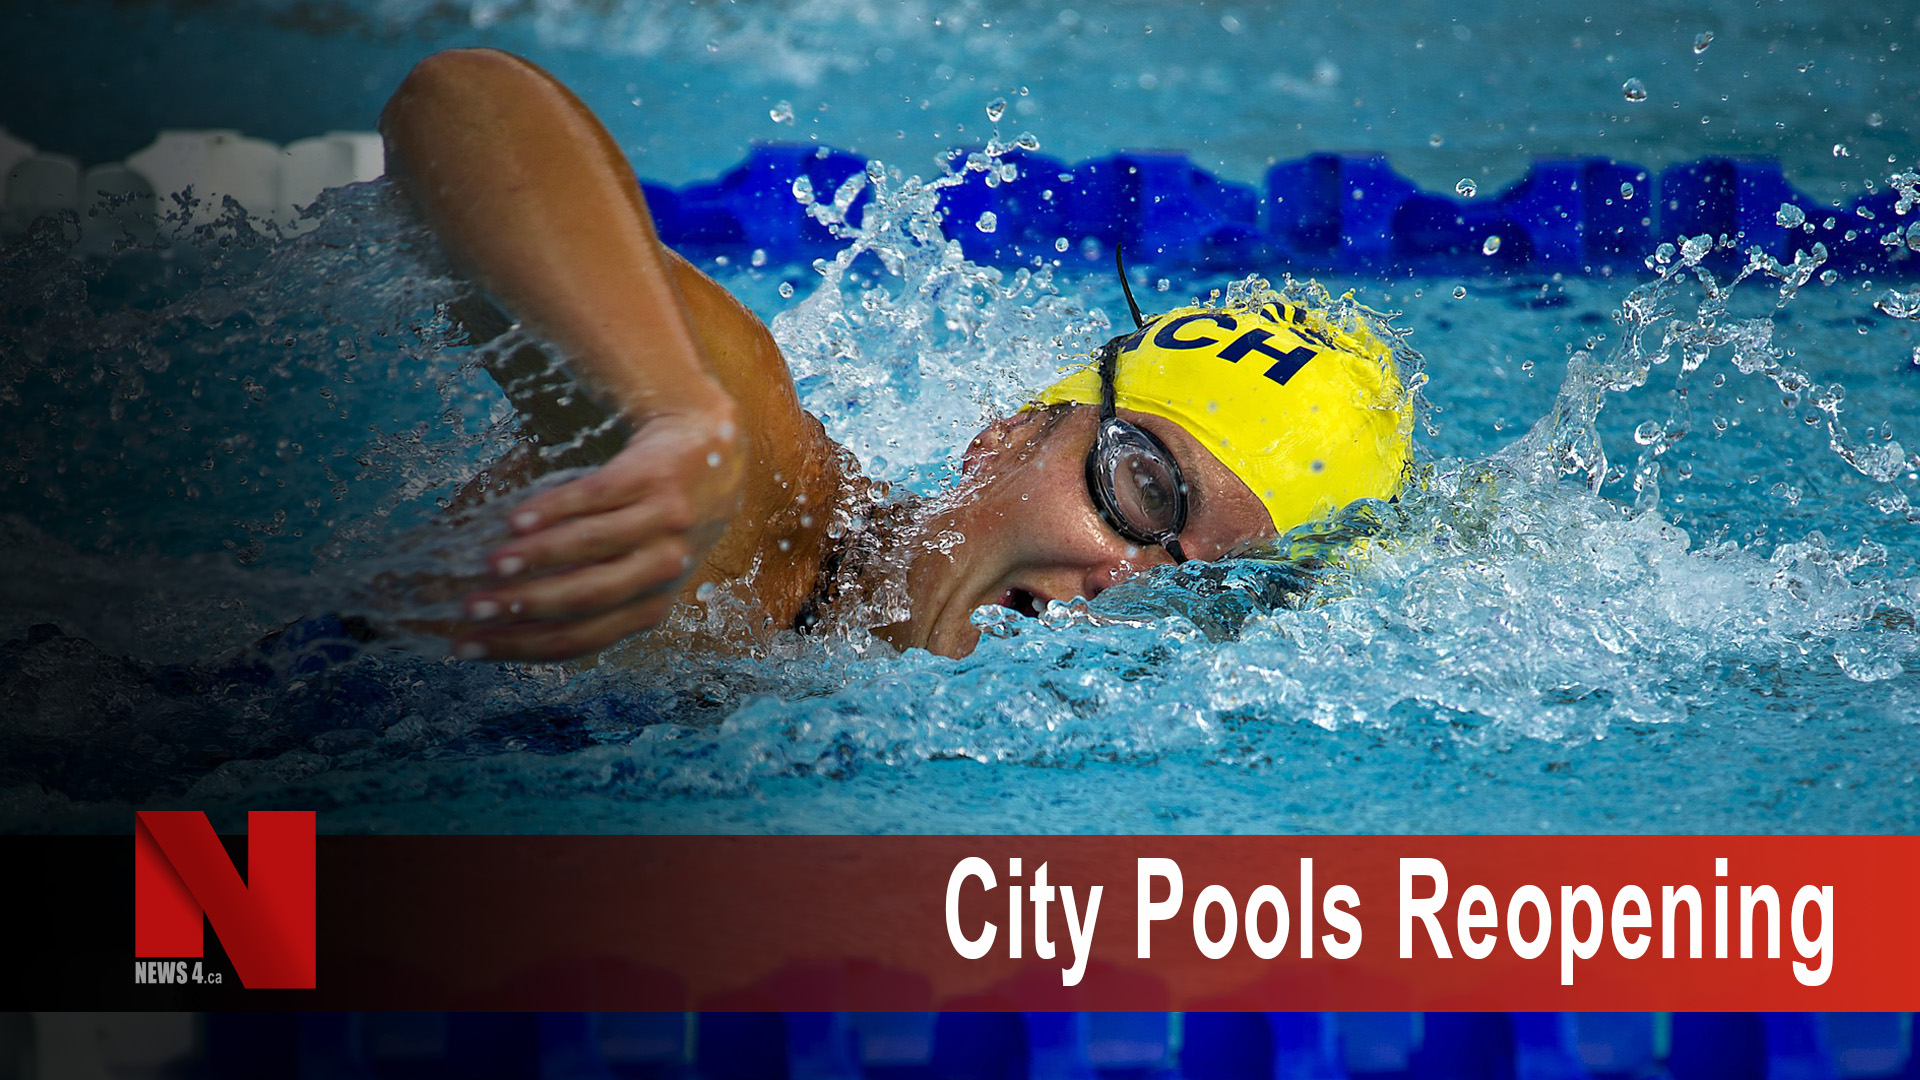 City Pools Reopening